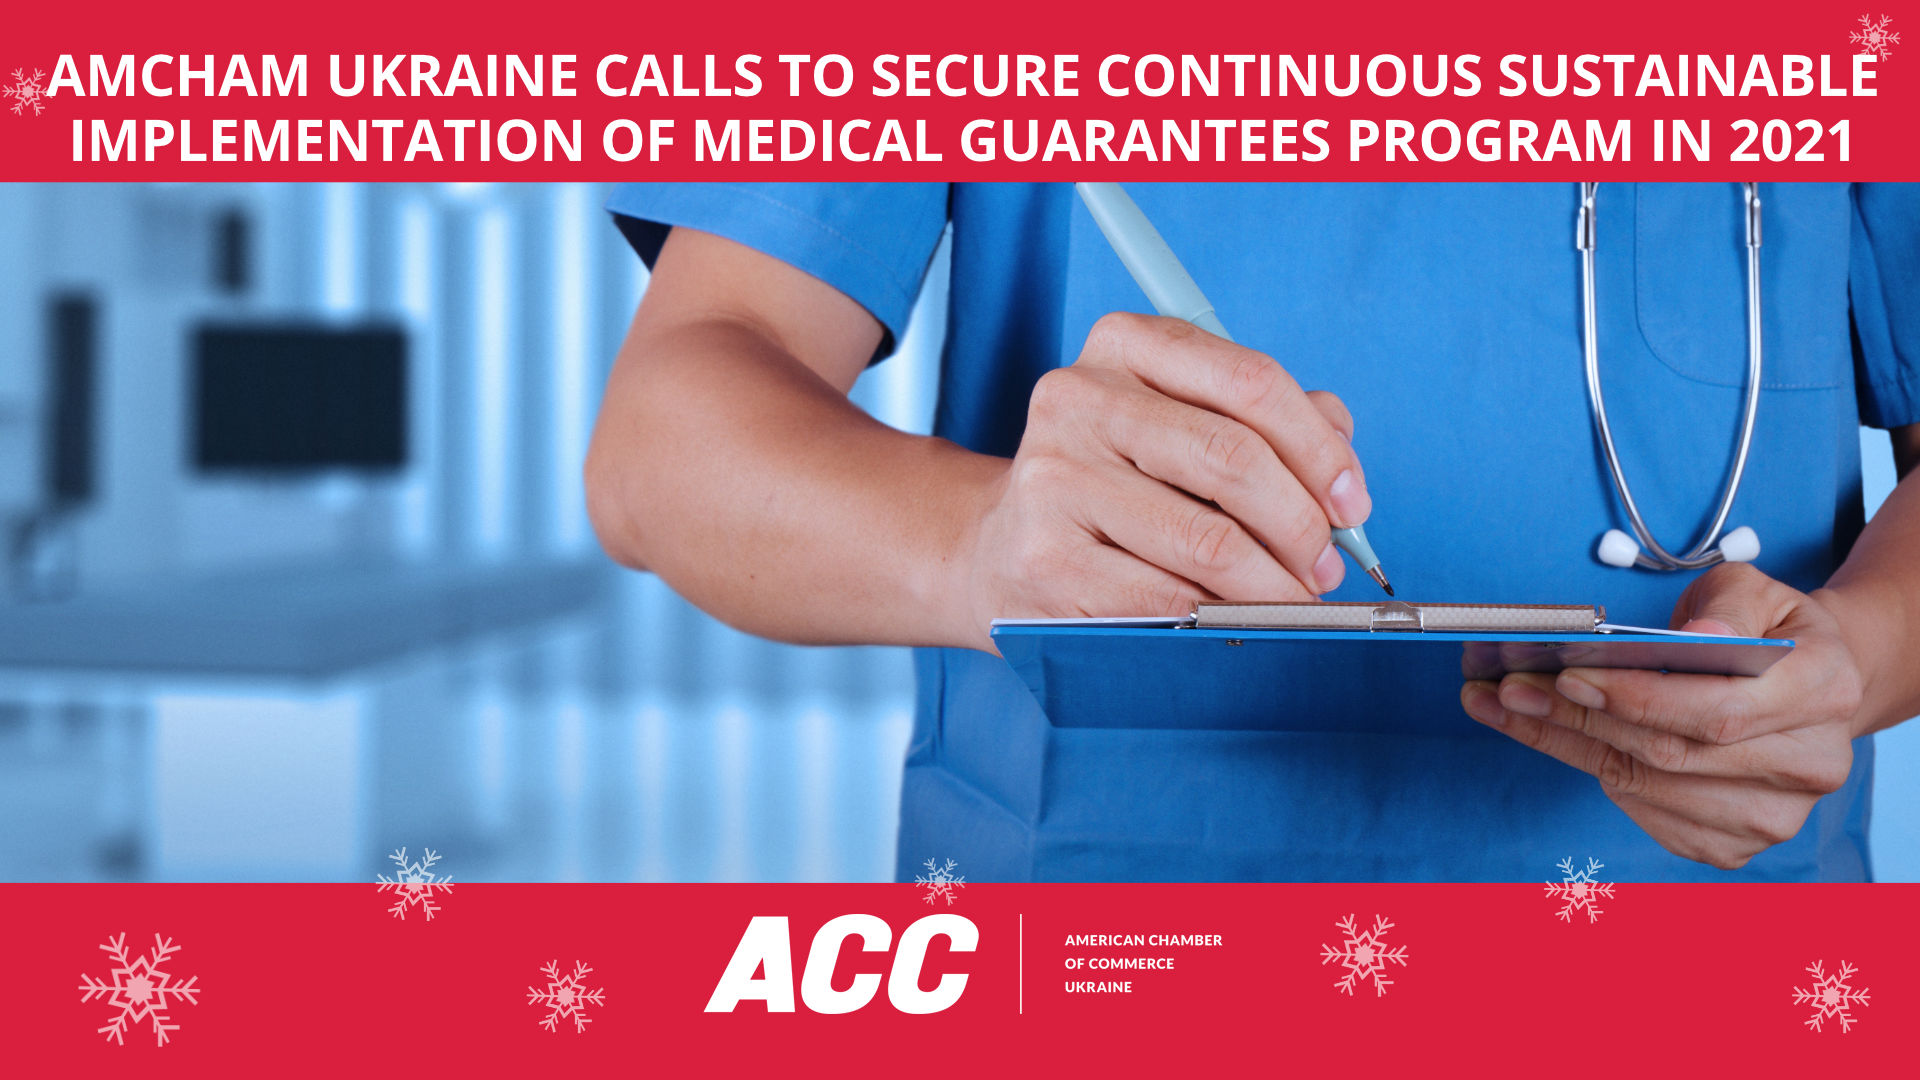 AmCham Ukraine Calls to Secure Continuous Sustainable Implementation of Medical Guarantees Program in 2021